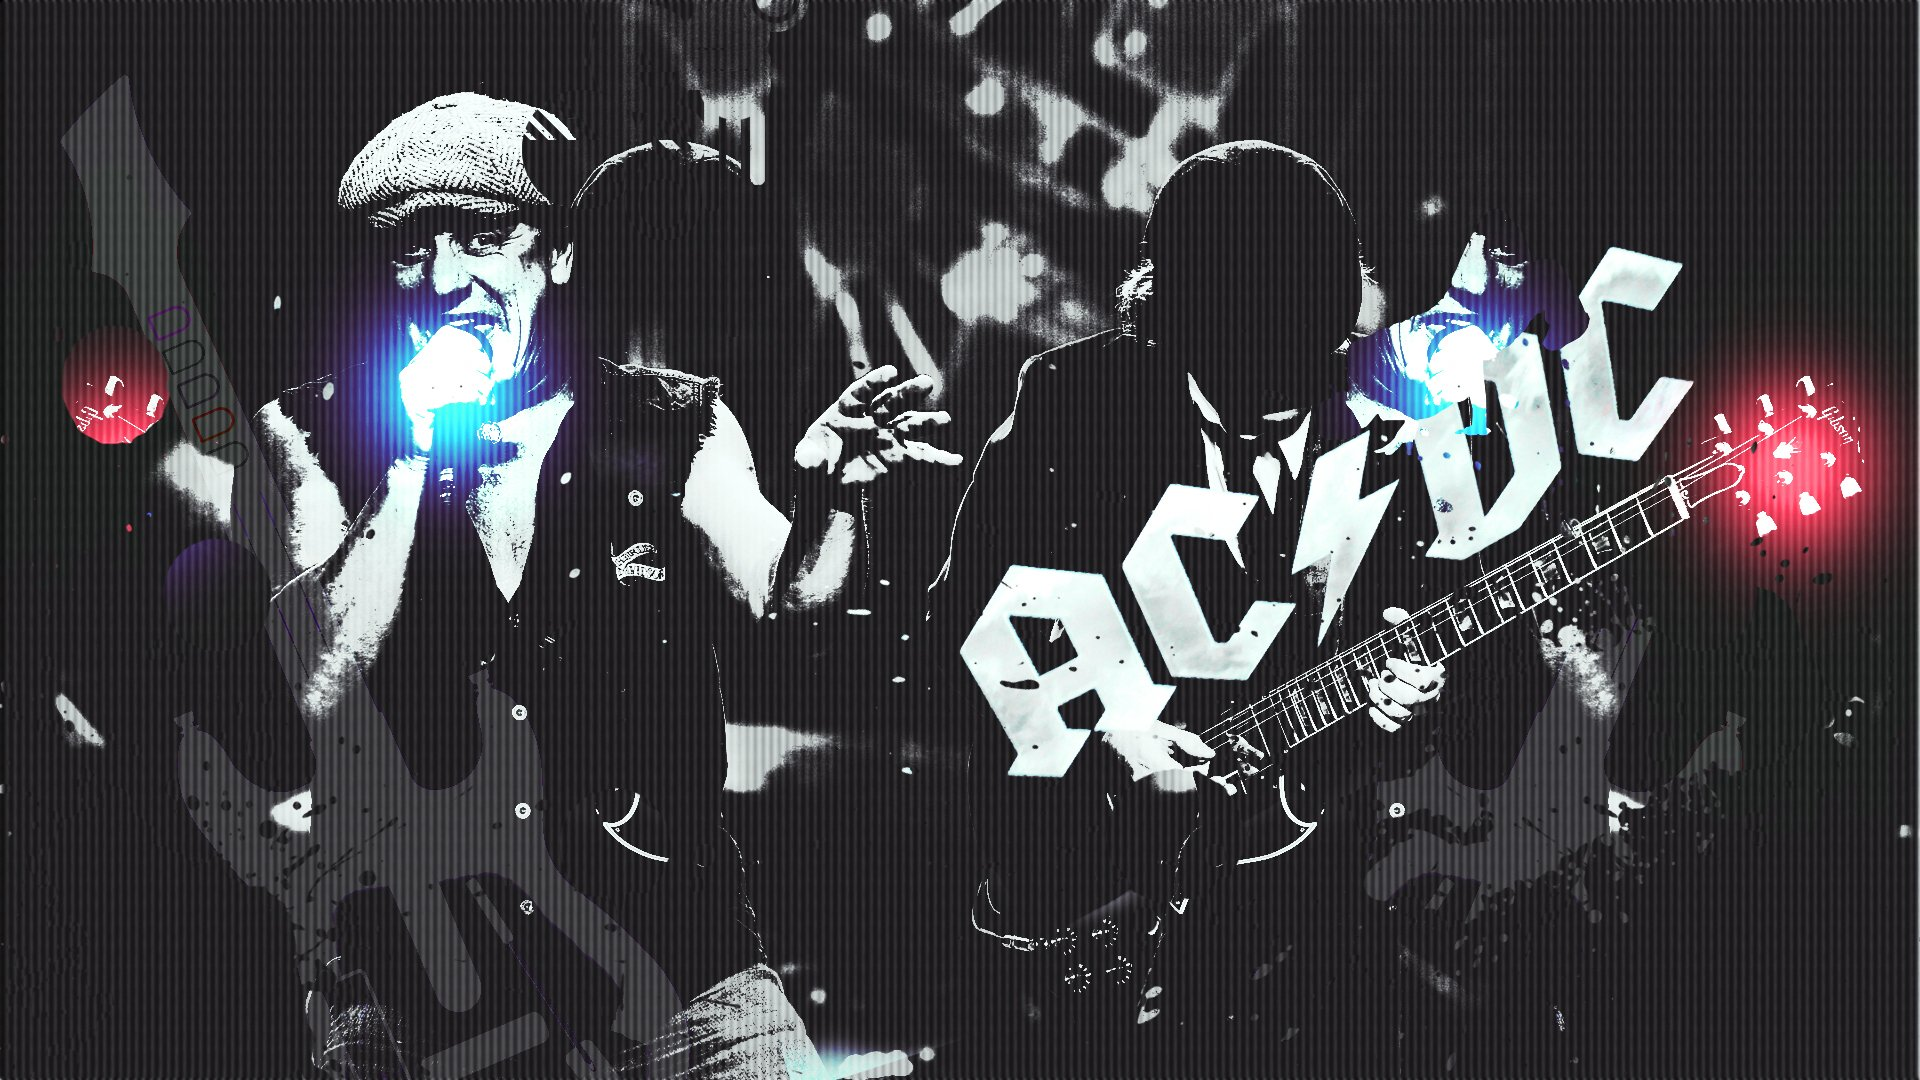 ACDC wallpaper ACDC wallpapers 1920x1080